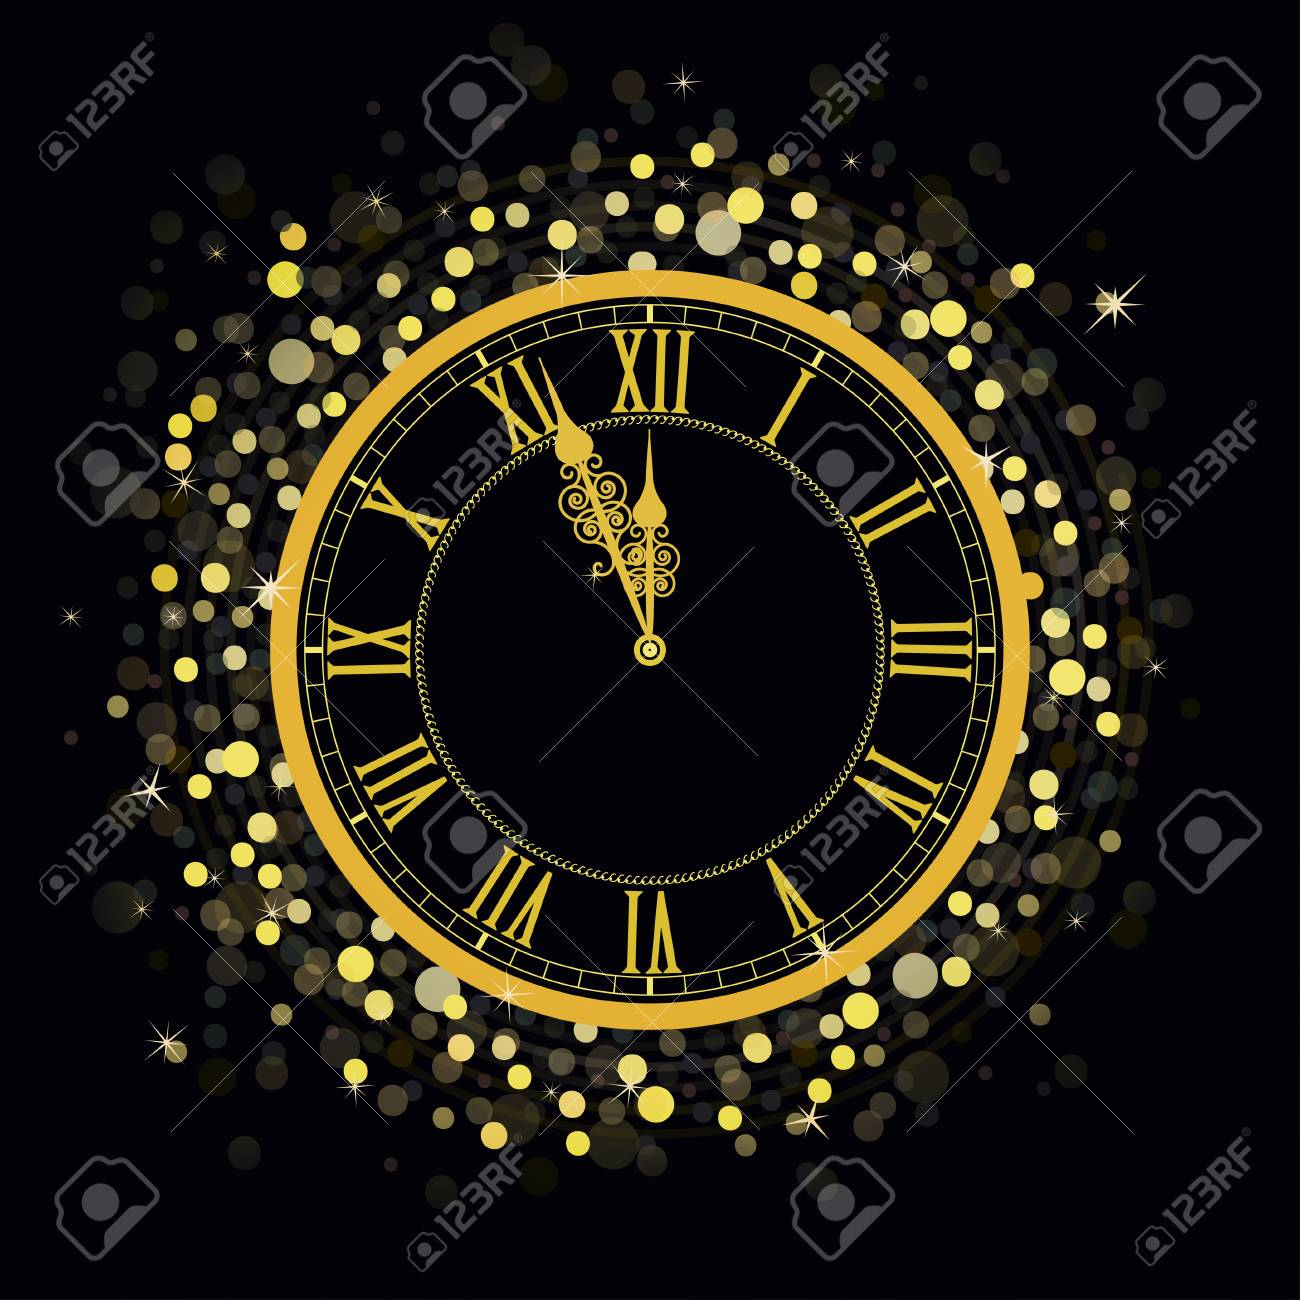 golden new year clock on a glowing background with bright sparkle lights and shiny spots